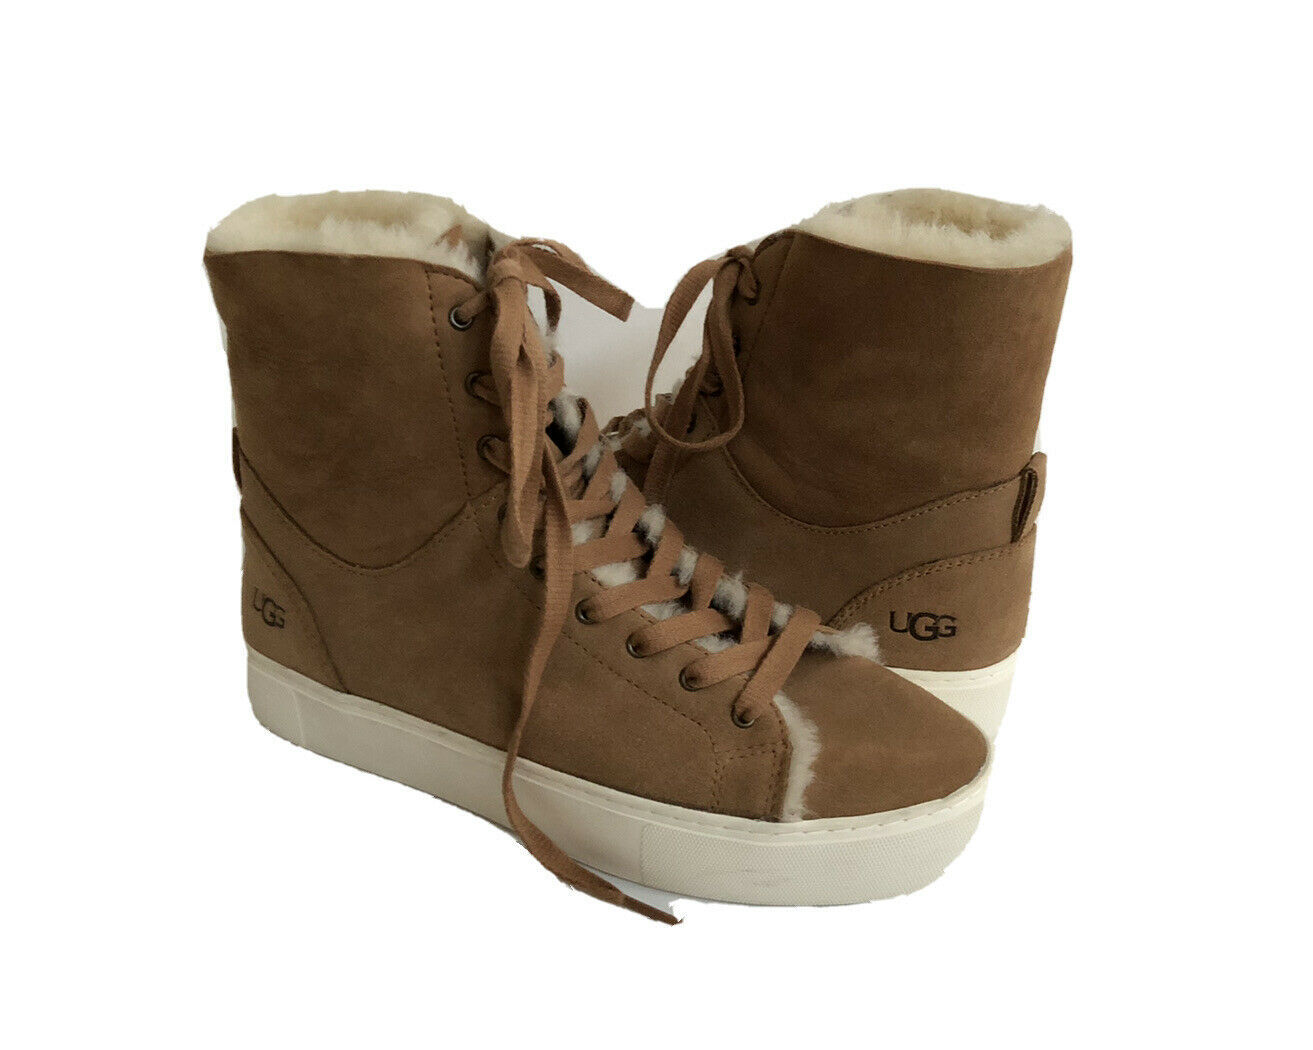 UGG BEVEN CHESTNUT CUFFABLE HIGH TOP LEATHER SNEAKER US 9.5 / EU 40.5 / UK 7.5 - $92.57